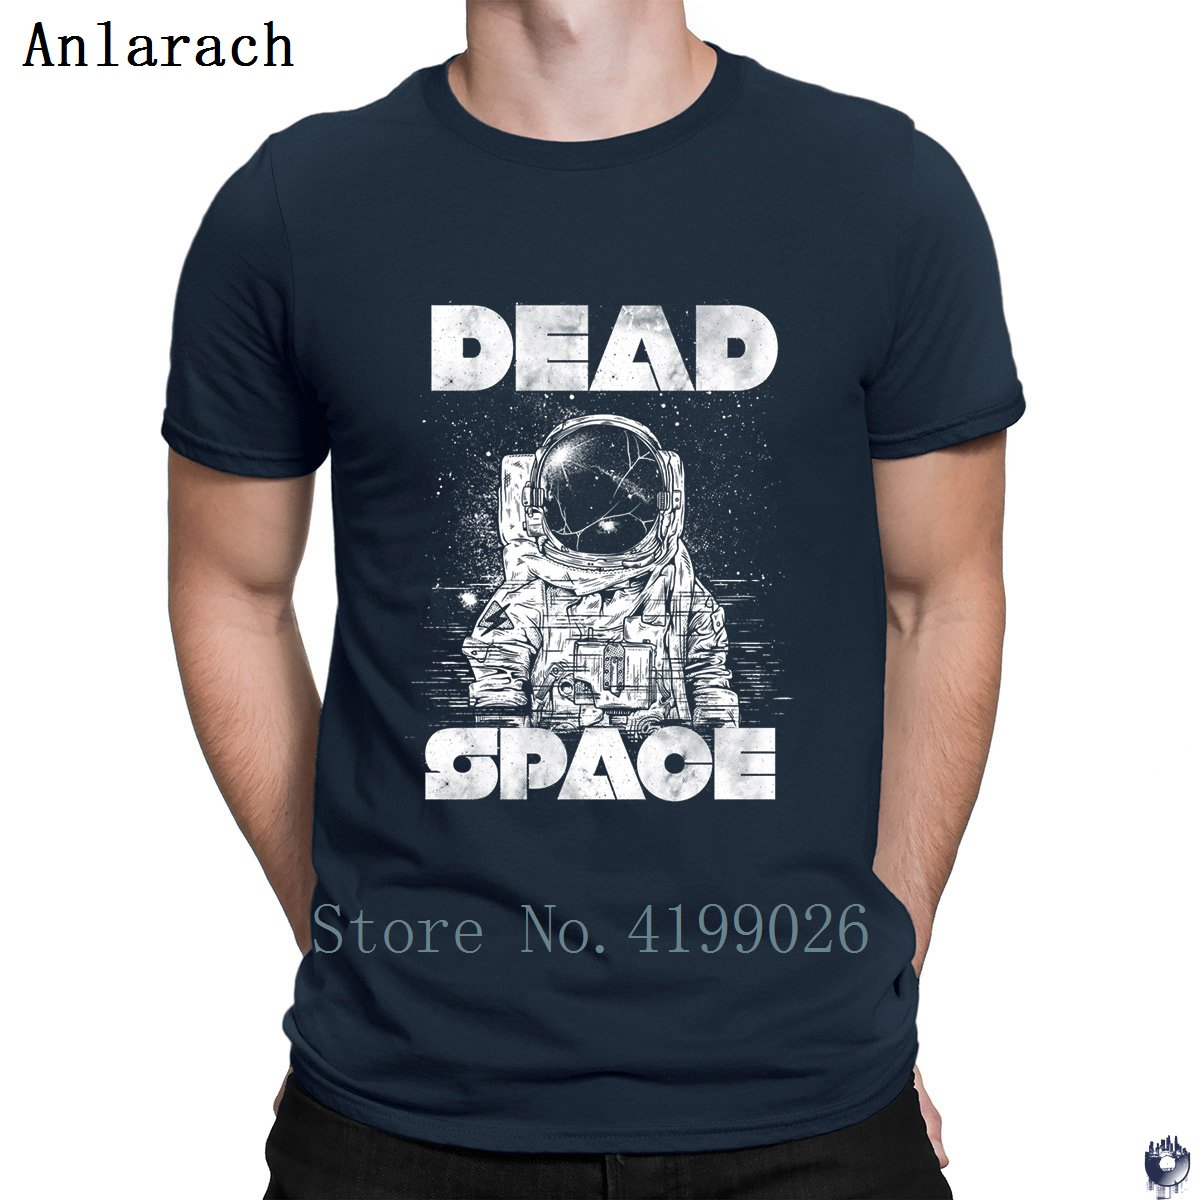 Dead Space t-shirts tops Printing Gift Building tshirt for men homme slim Spring Autumn Anlarach cotton image